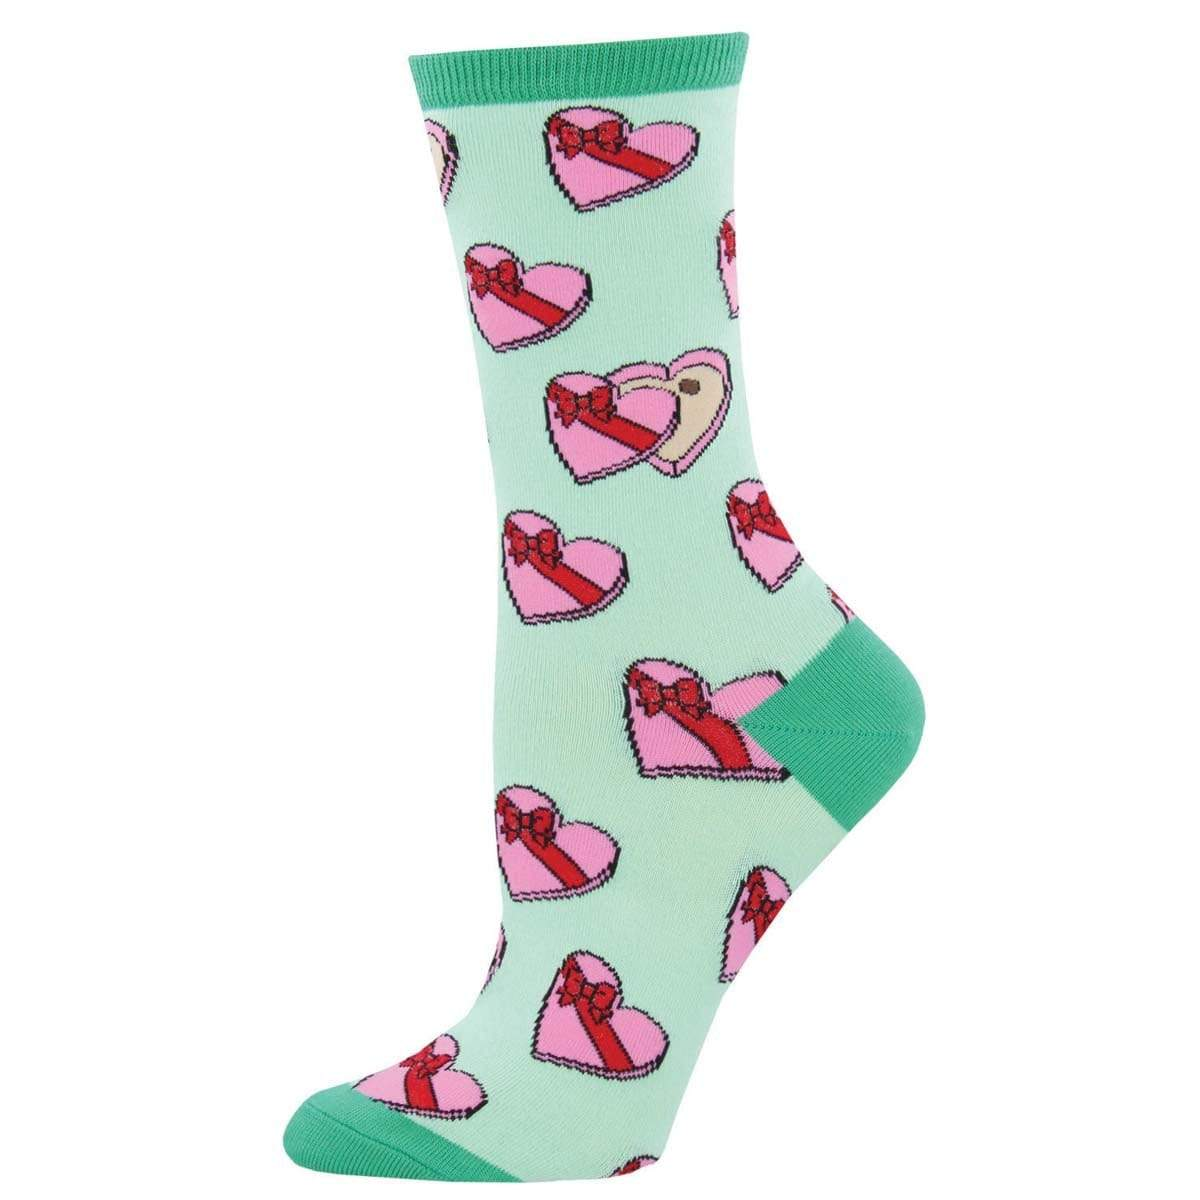 Saved You Some Women's Crew Sock